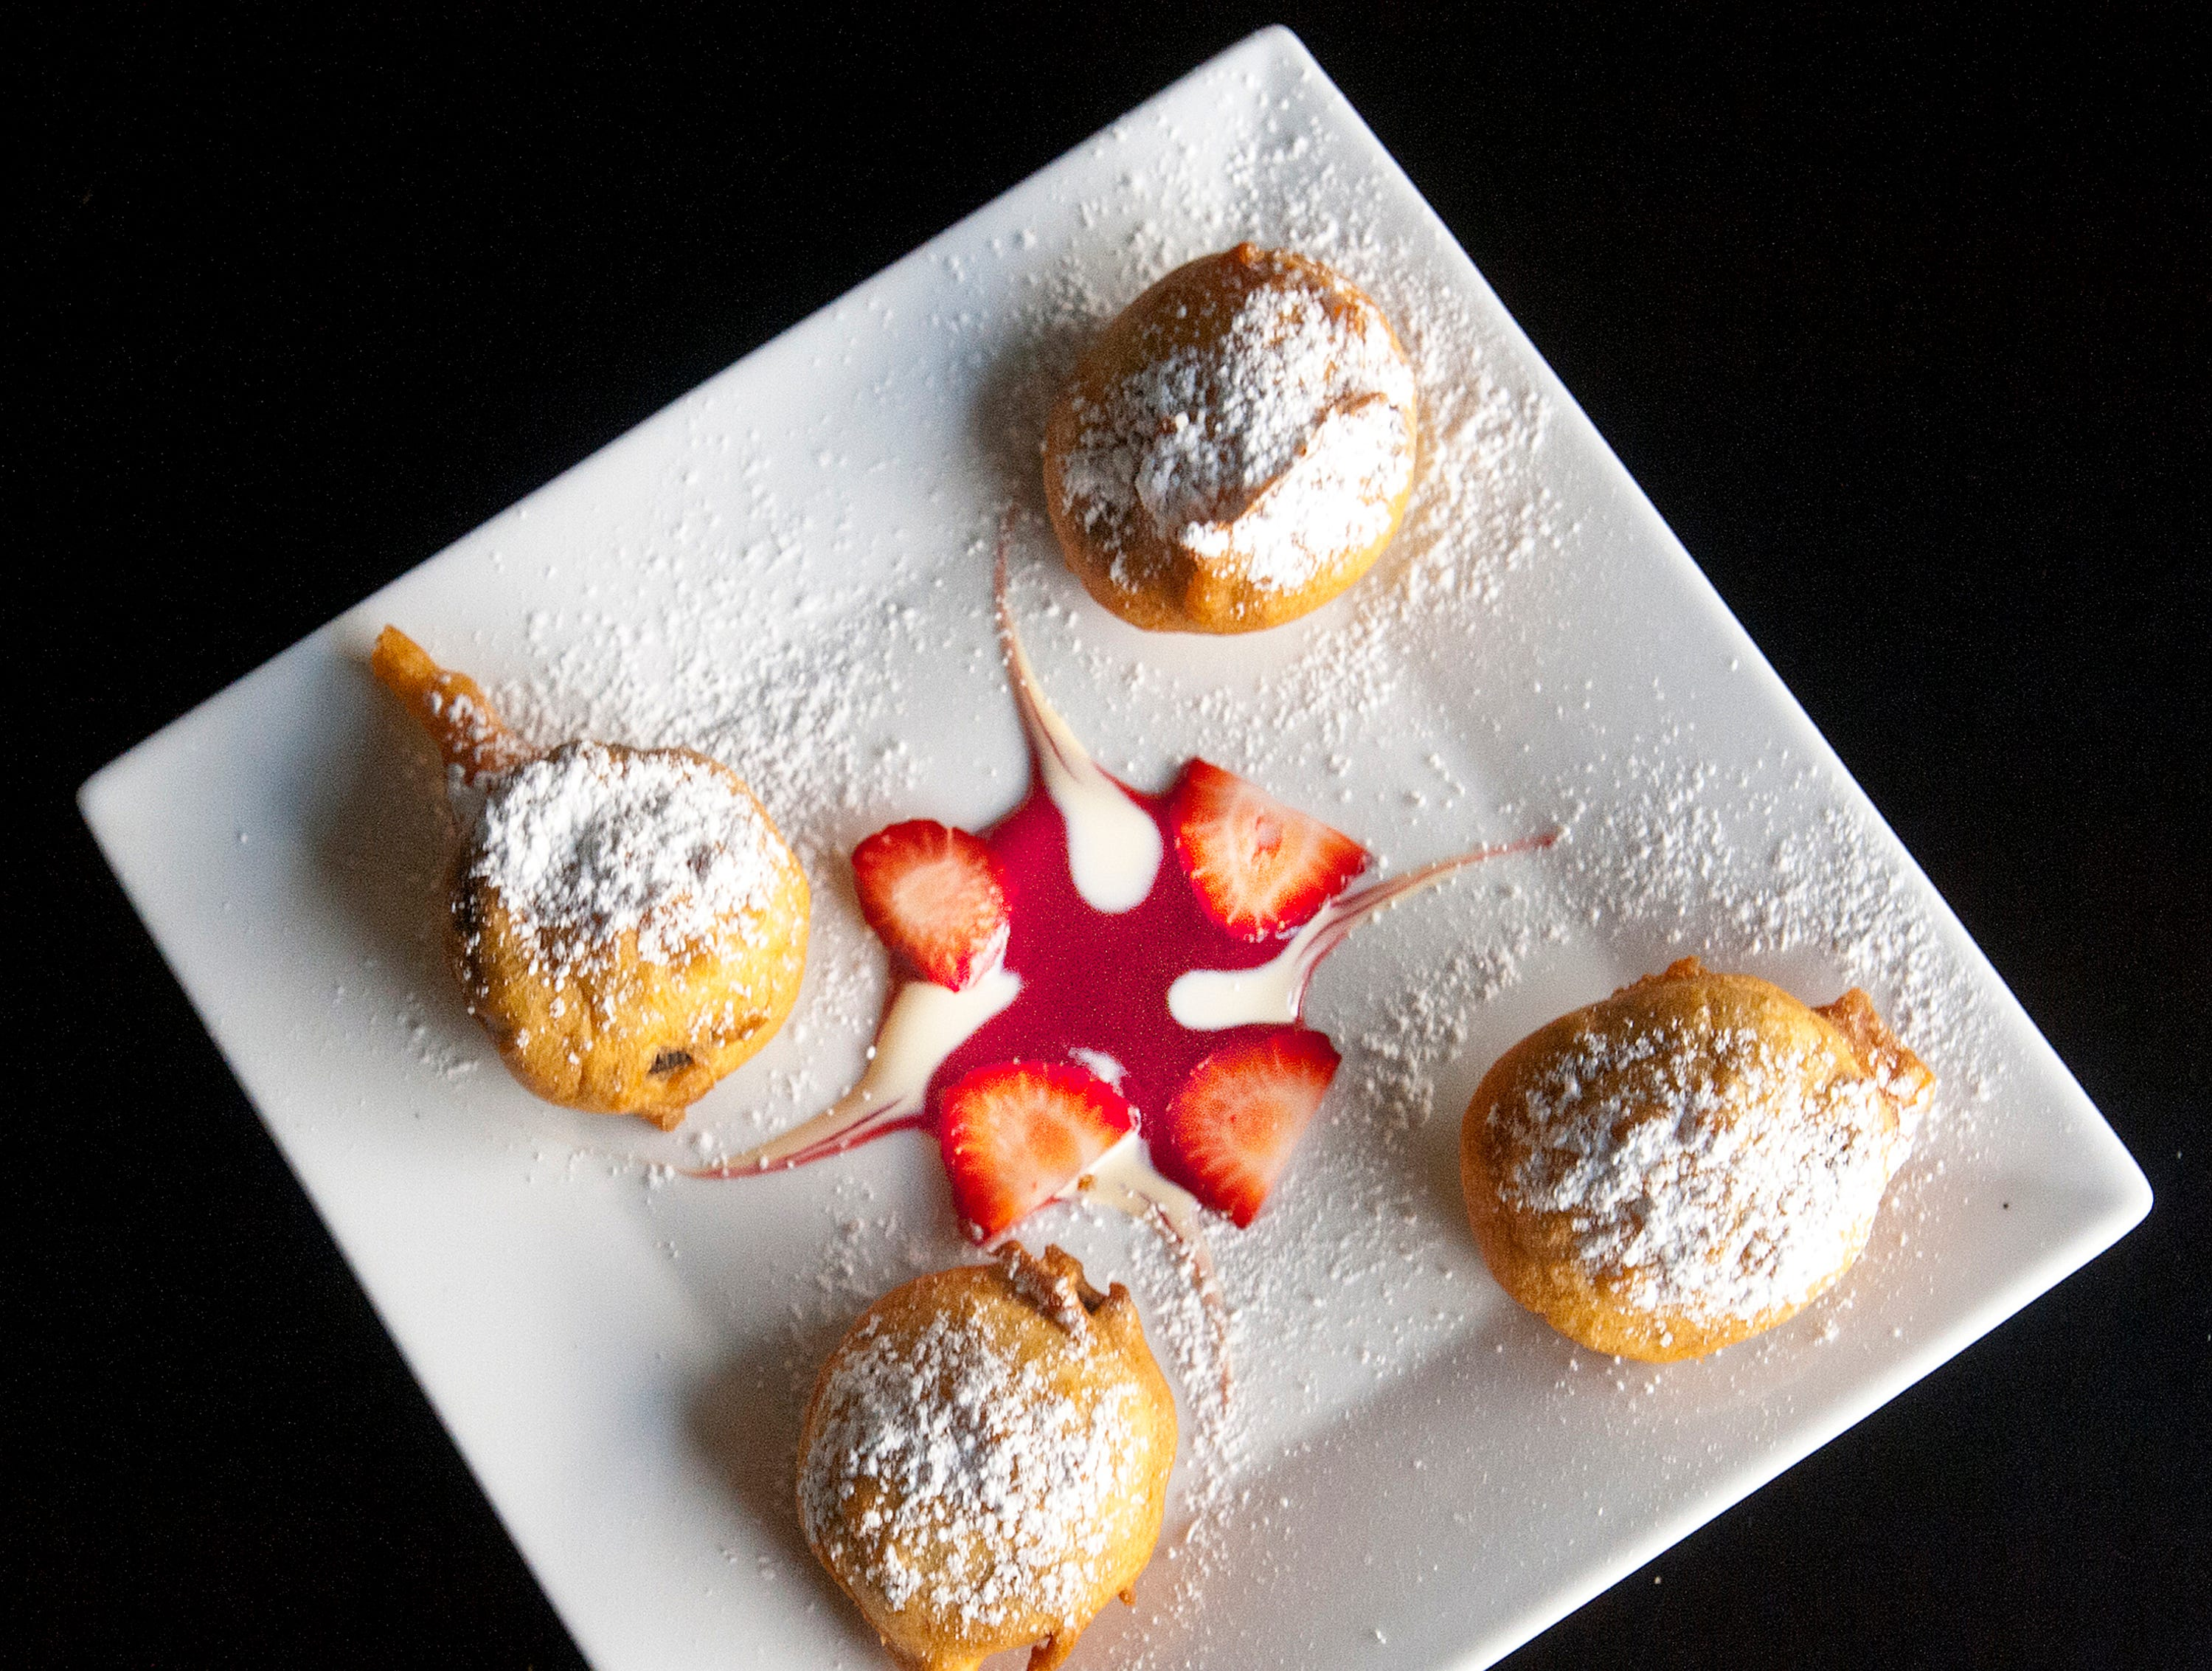 The Flavour Restaurant's beignets are made with a whole Oreo cookie added to a sweet flower batter which is then deep fried and topped with powdered sugar. The dish is seen here with sliced strawberries in raspberry and vanilla bean coulis. The coulis may change seasonally. November 08, 2018